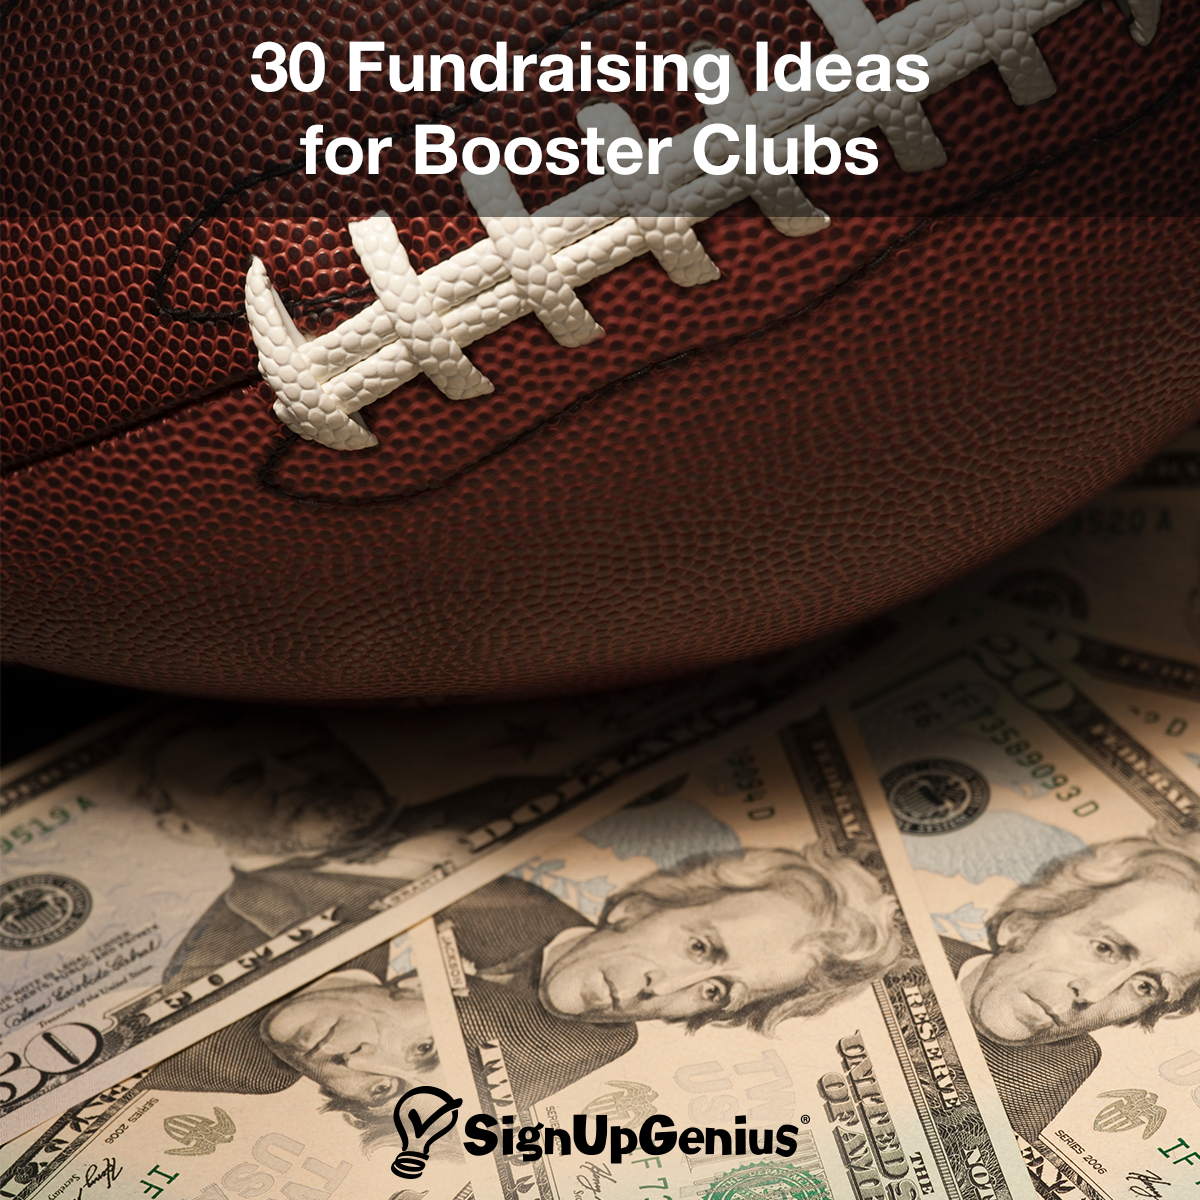 30 fundraising ideas for booster clubs. help your youth sports team